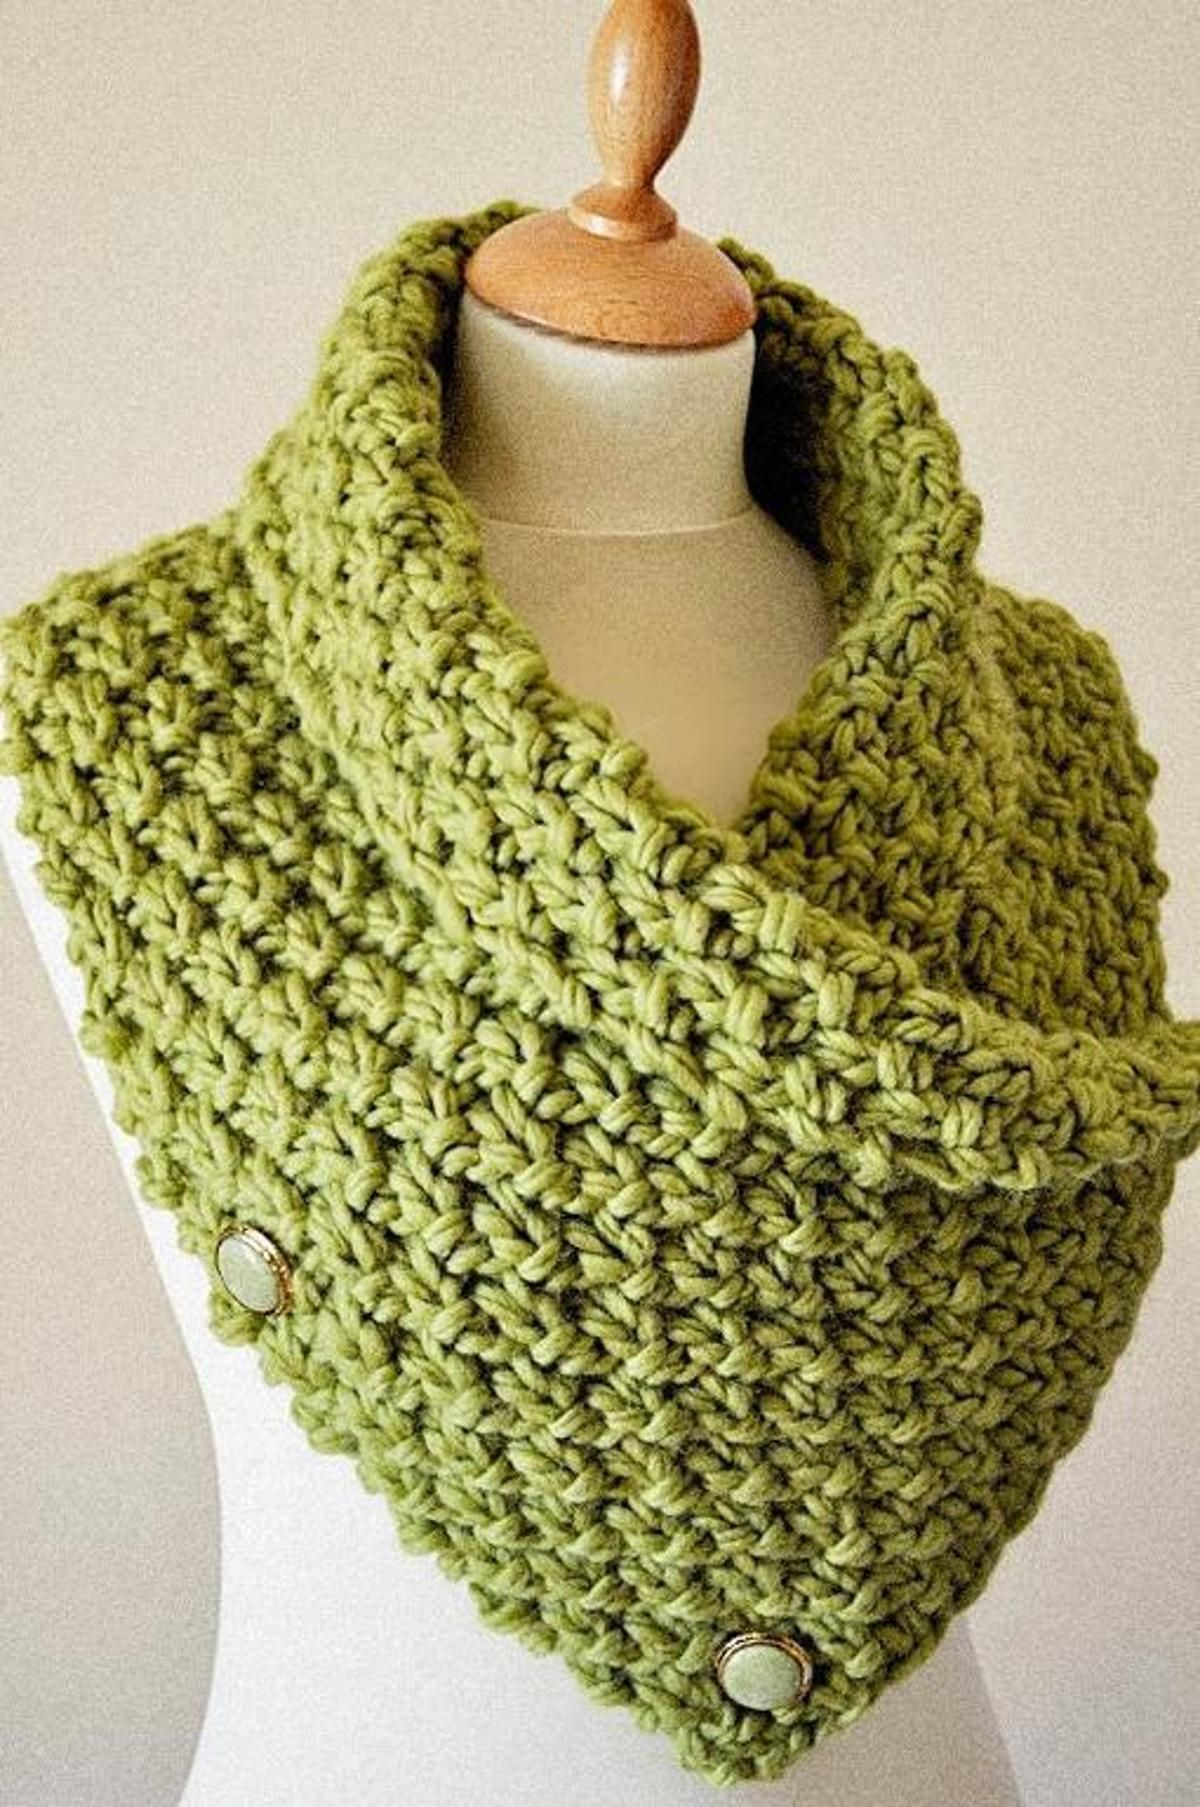 Easy chunky knit neck warmercowl craftsy easy chunky knit neck warmercowl bankloansurffo Choice Image